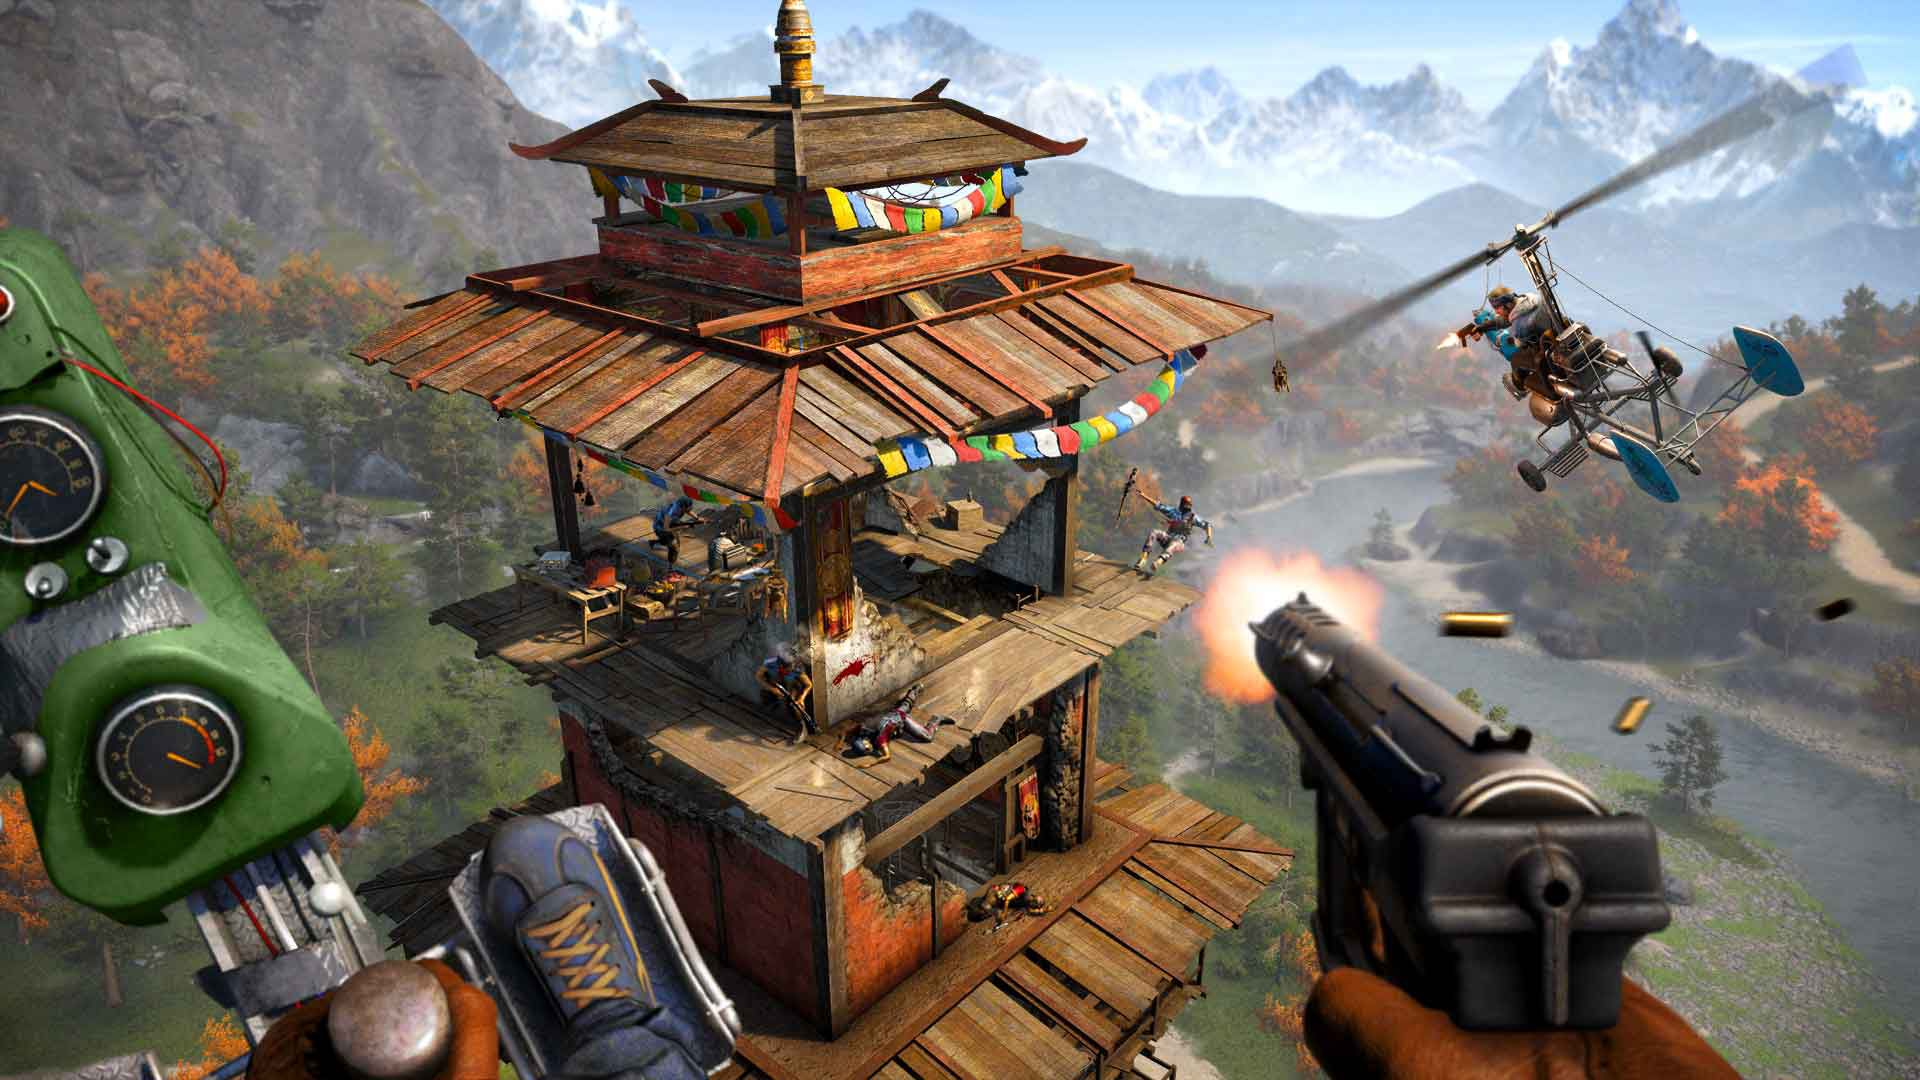 Review game Far Cry 4